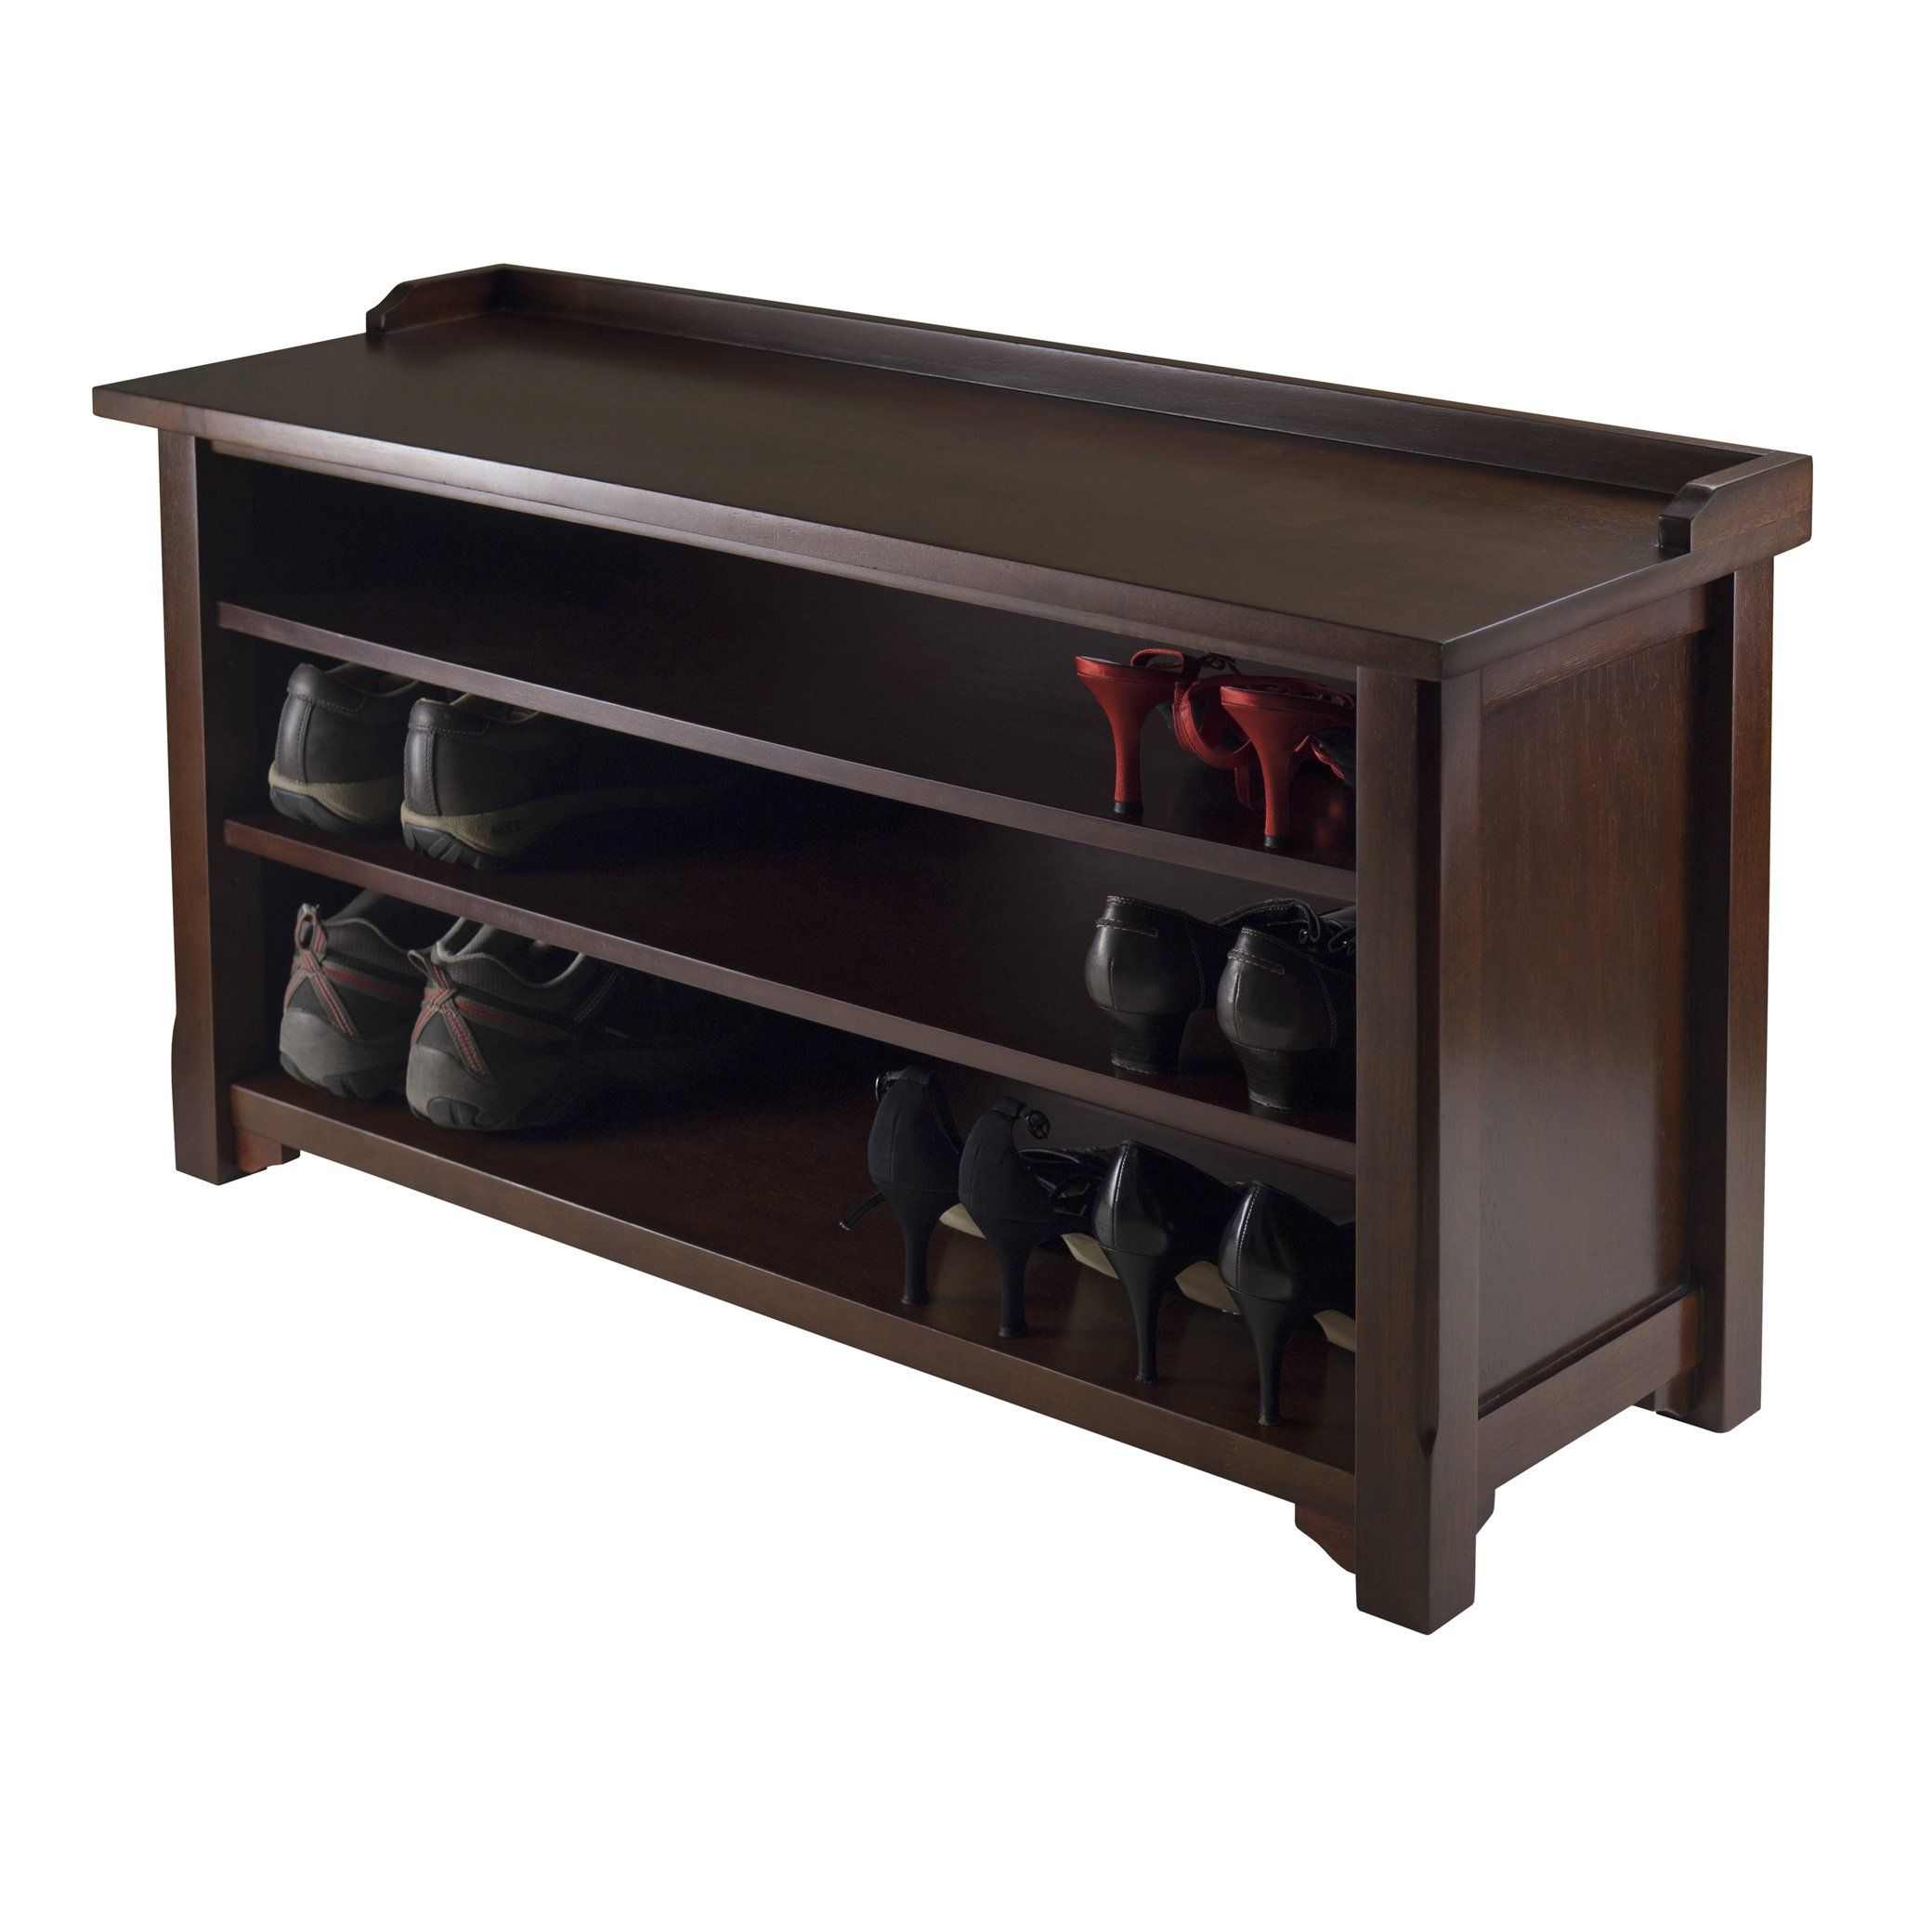 Overstock Com Online Shopping Bedding Furniture Electronics Jewelry Clothing More Hall Bench Bench With Shoe Storage Shoe Storage Bench Entryway